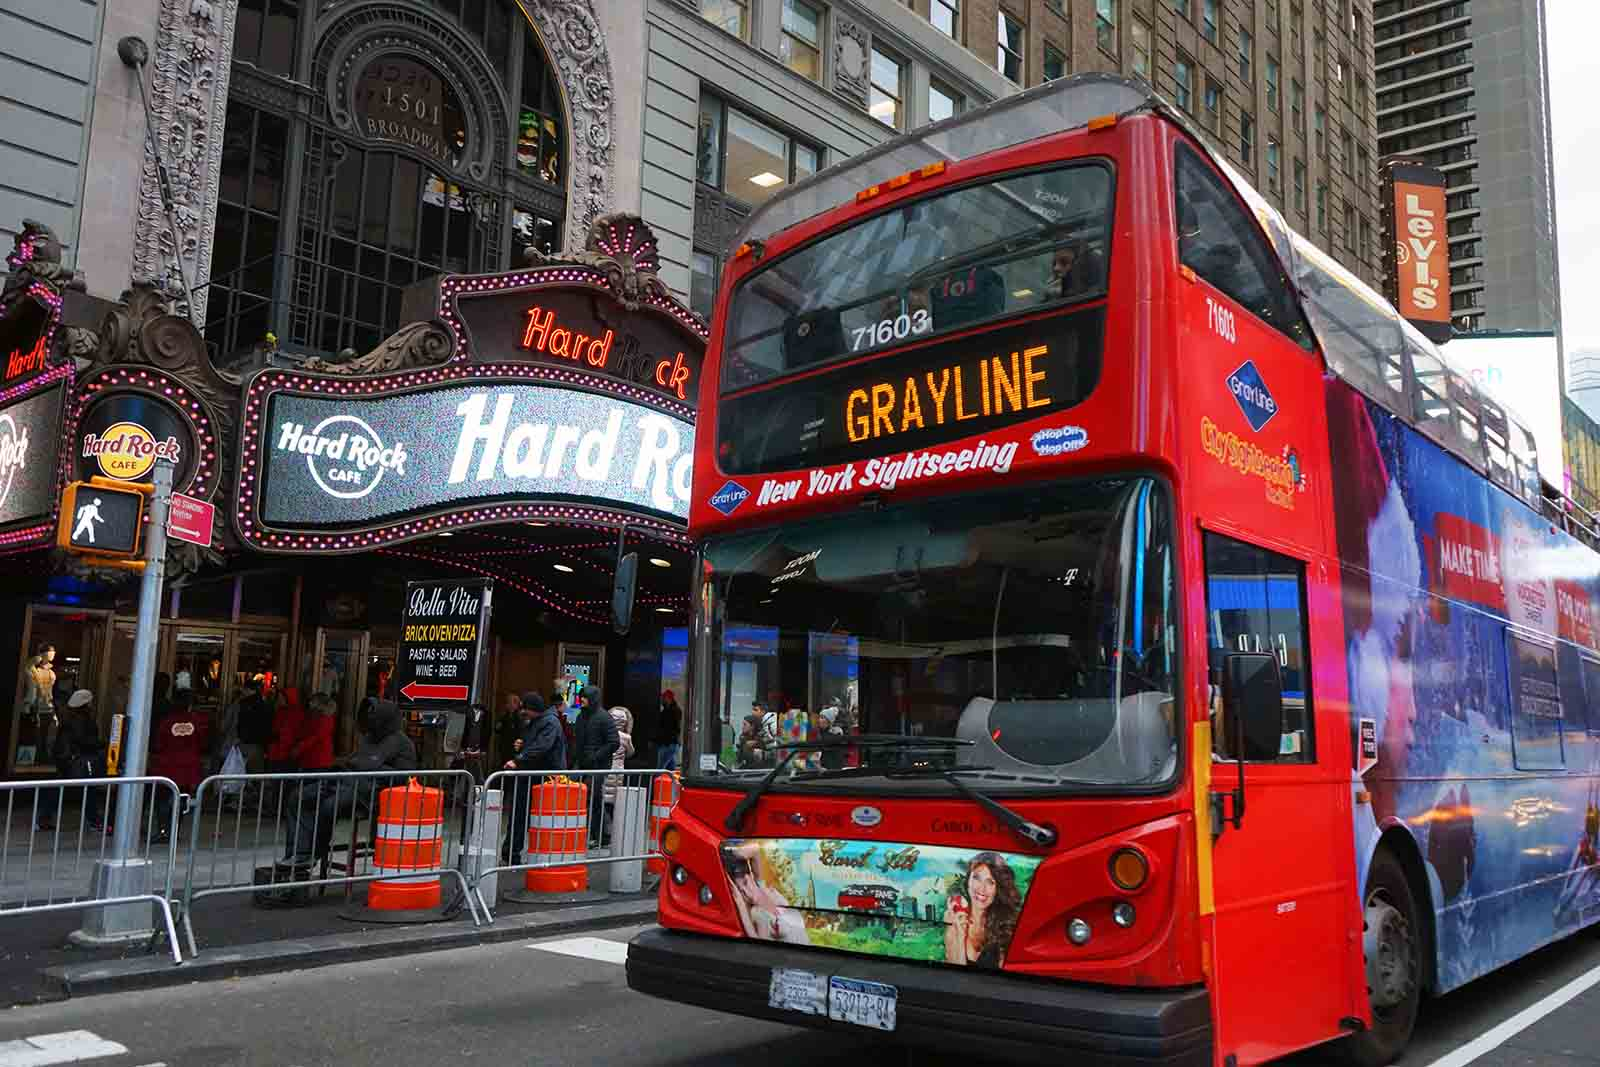 ▷ Hop-on Hop-off Bus Tours New York | Routes & Tickets 2019 on map of nyc bridge, map of nyc walking, map of nyc metro, map of nyc airport, map of nyc art, map of nyc vintage, map of nyc food, map of nyc restaurants, map of nyc trains, map of nyc hotels, map of nyc commuter rail, map of nyc ferry, map of nyc subway, map of nyc underground, map of nyc hospital, map of nyc street,